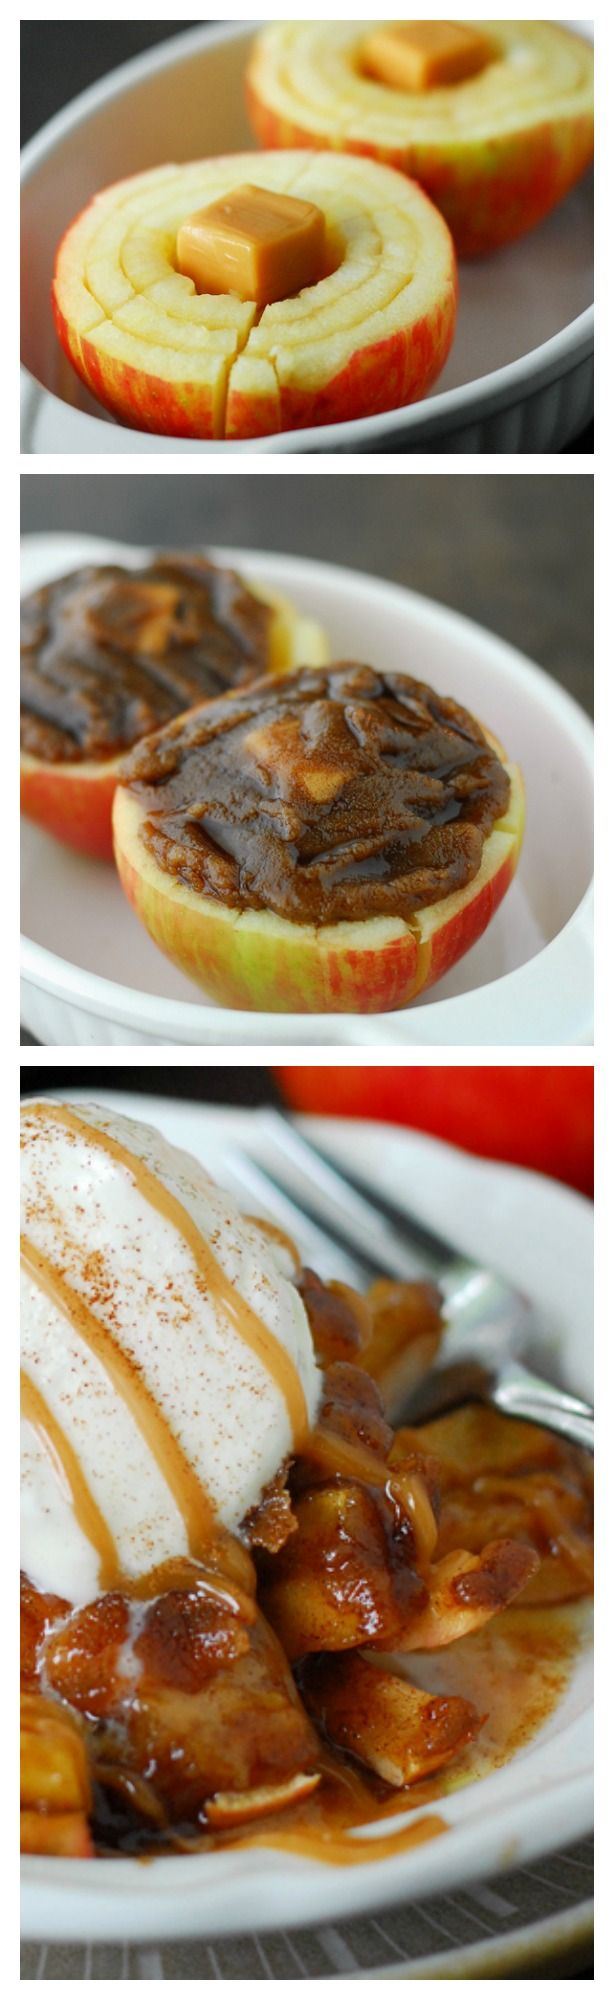 Blooming  Baked Apple 2 Honeycrisp apples (or other crisp apples) 2 tbsp butter 3 tbsp brown sugar, packed 1 tbsp flour 1 tsp cinnamon 4 caramels, unwrapped Optional toppings: vanilla ice cream, caramel sauce and cinnamon